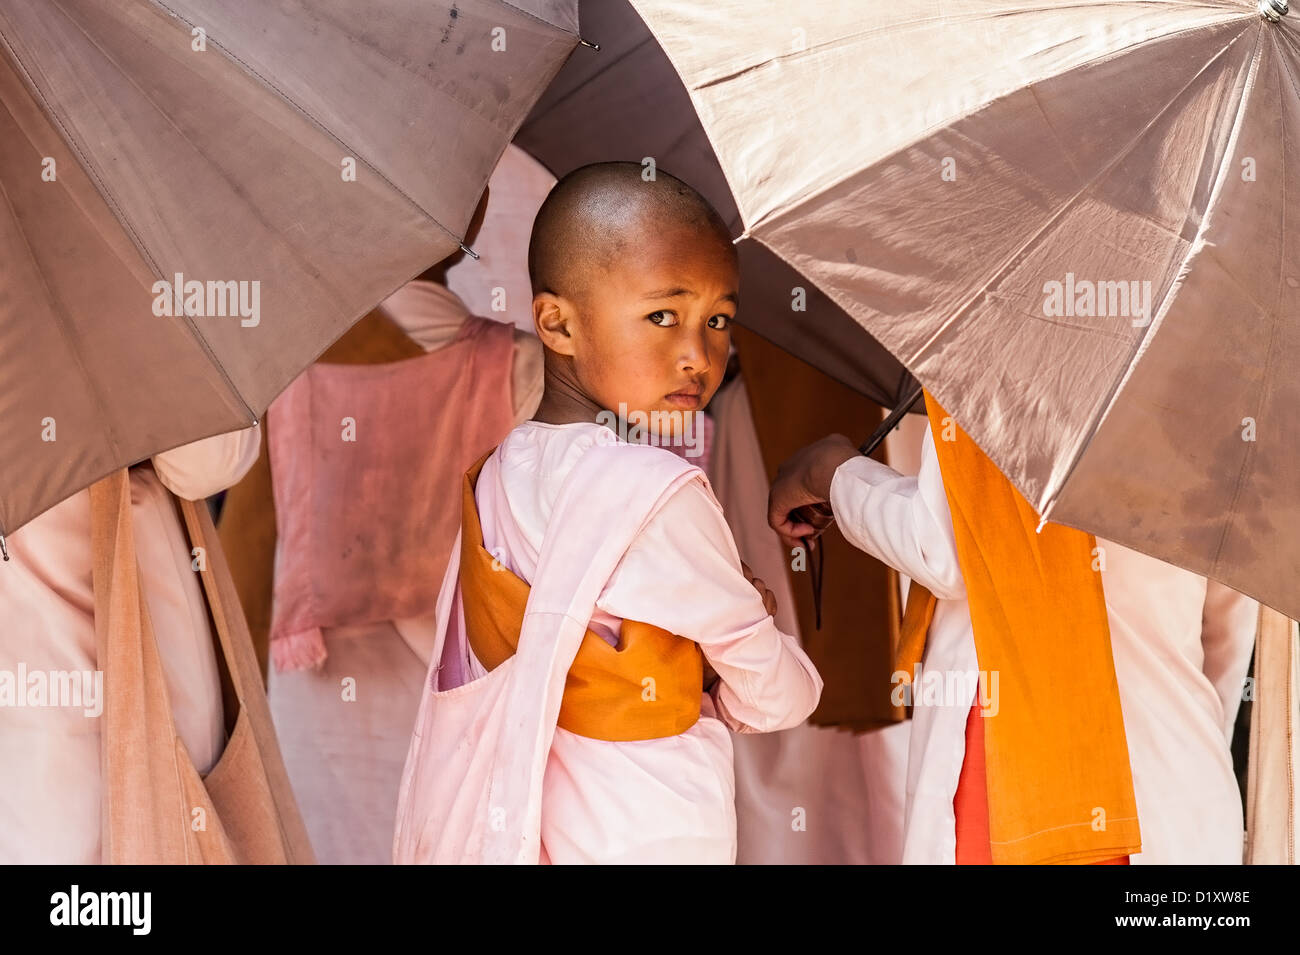 A young buddhist nun attends almsgiving in Kyaukme town, Shan State, Myanmar/Burma. Stock Photo